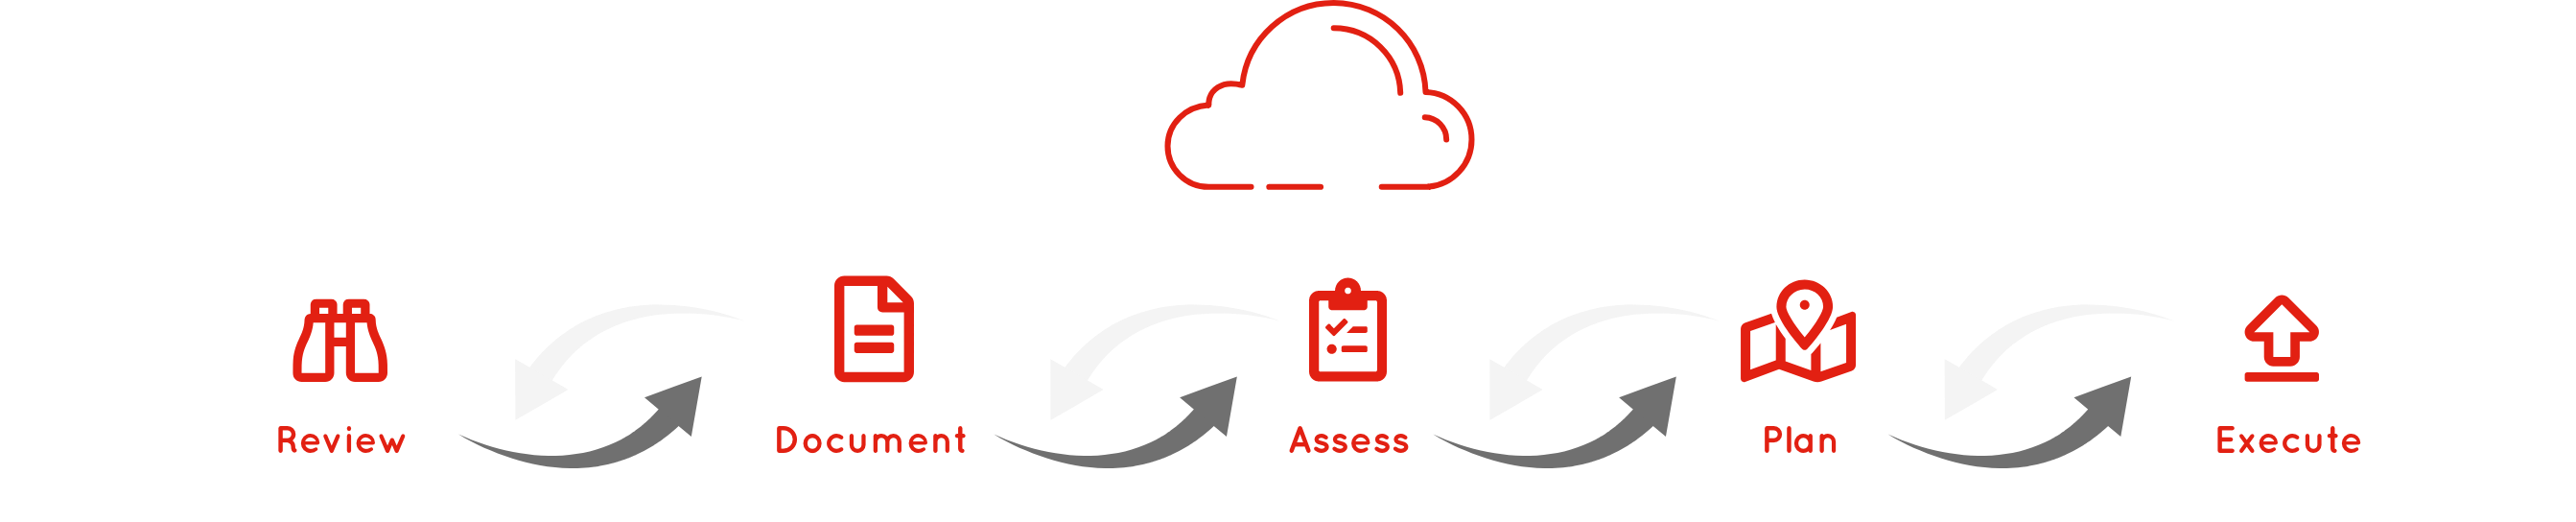 Oracle cloud diagram